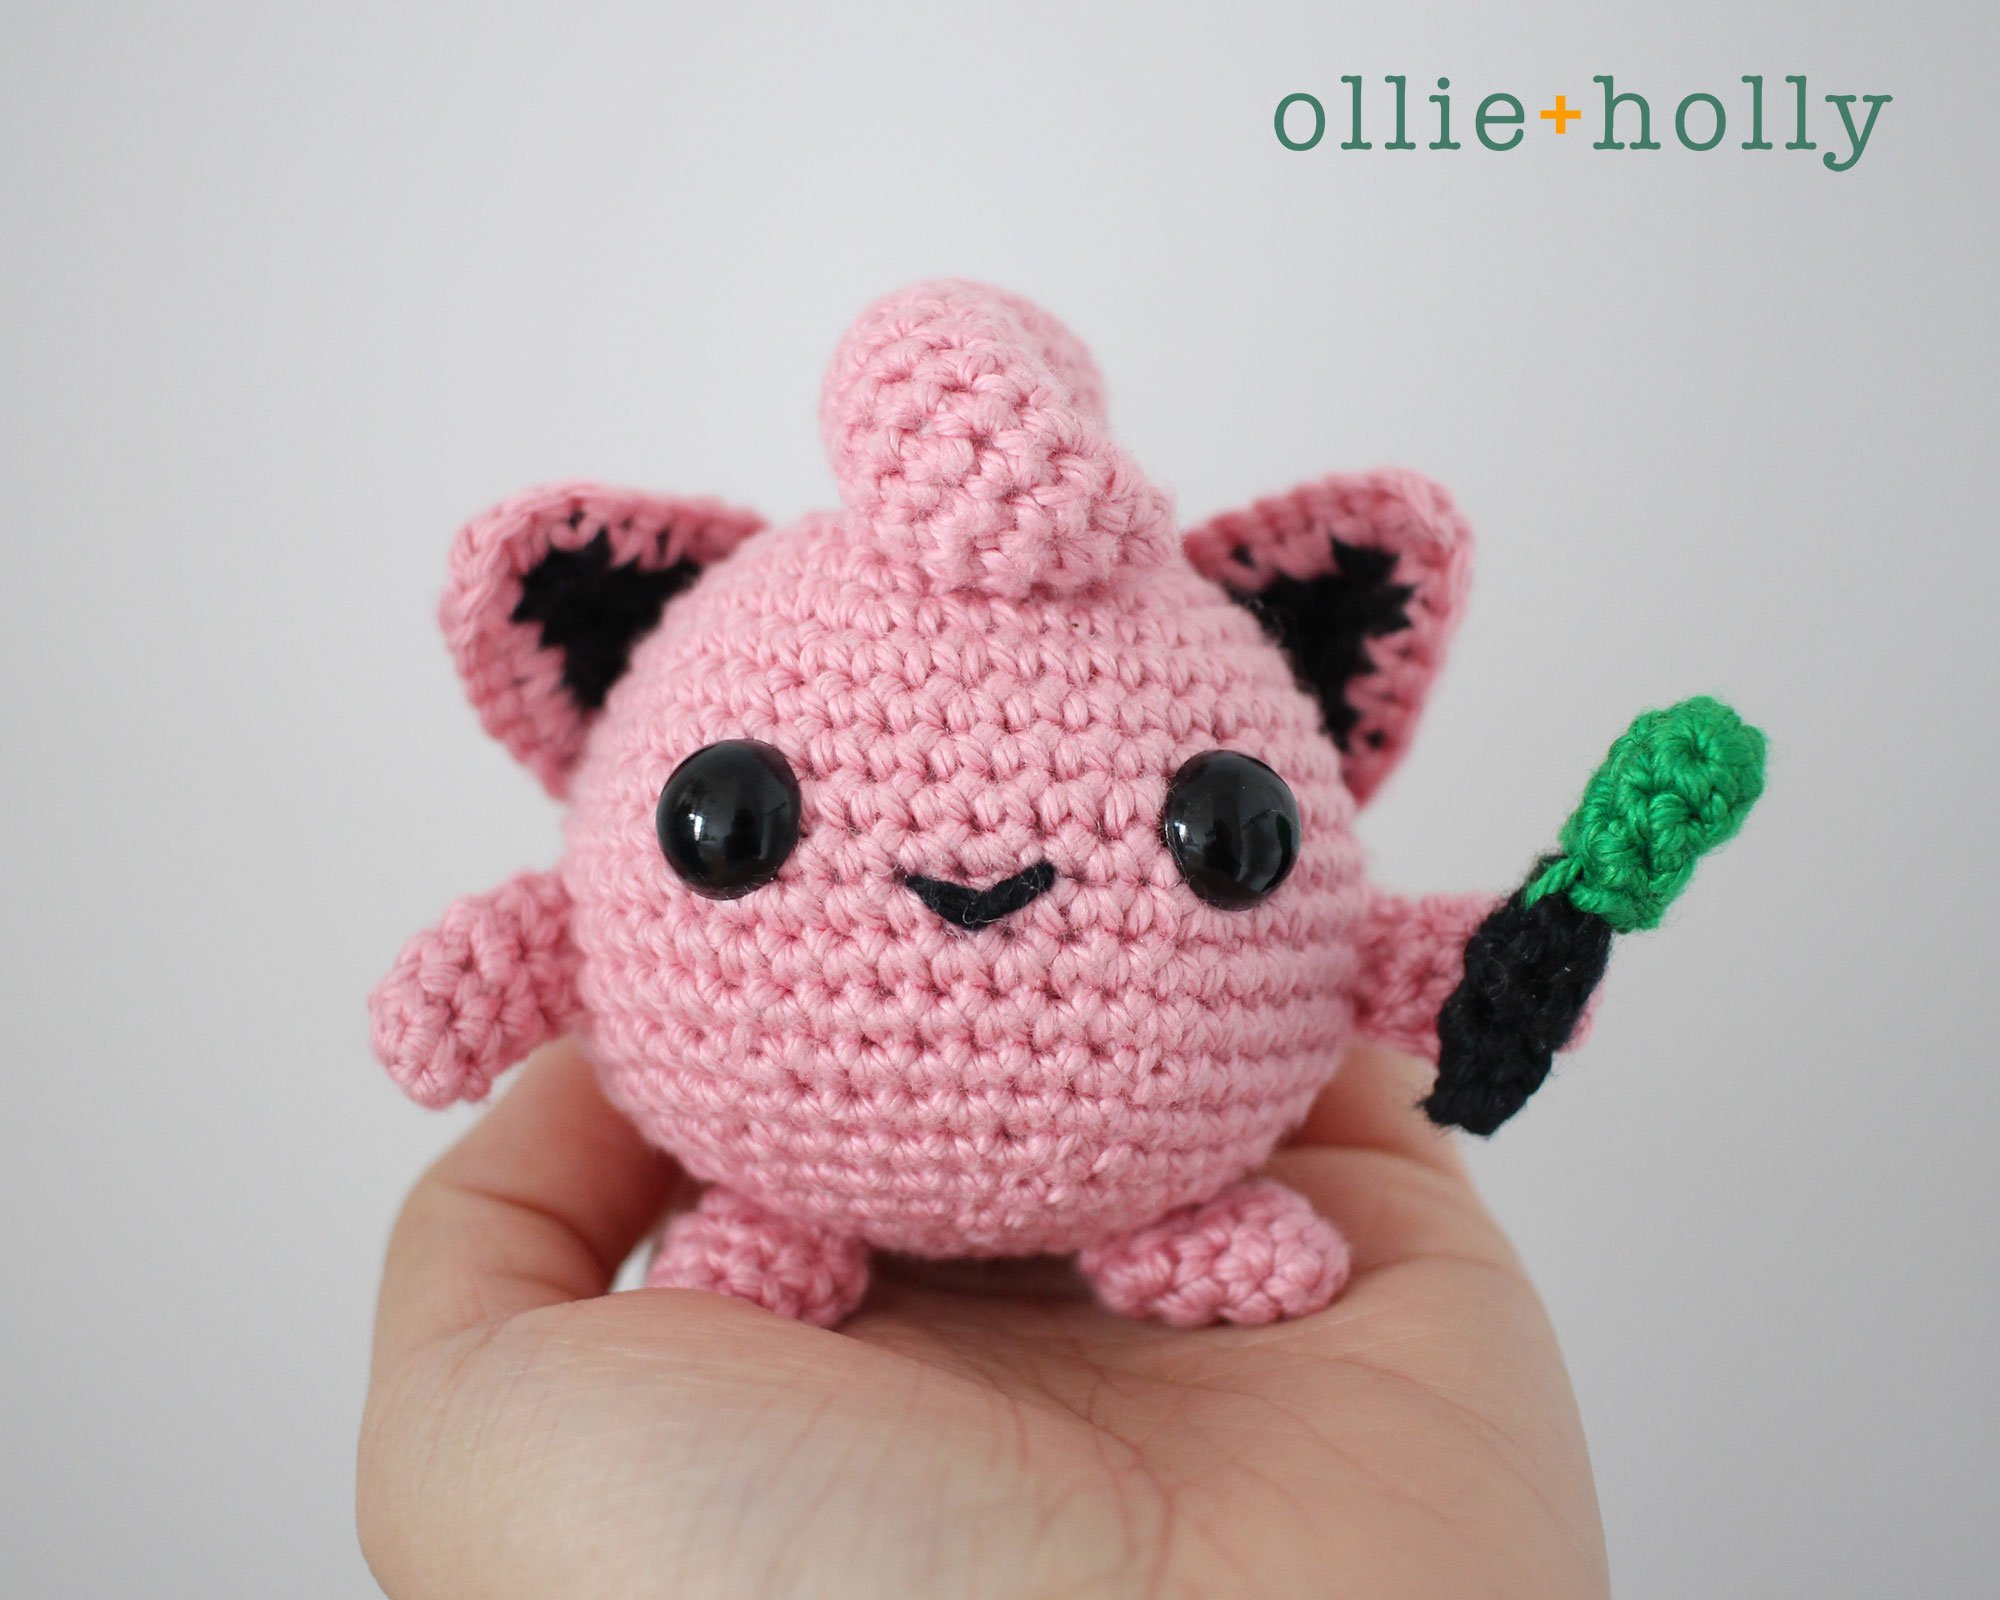 DIY Amigurumi Pikachu Crocheted amigurumi Pokémon – Amigurumi Patterns | 1600x2000